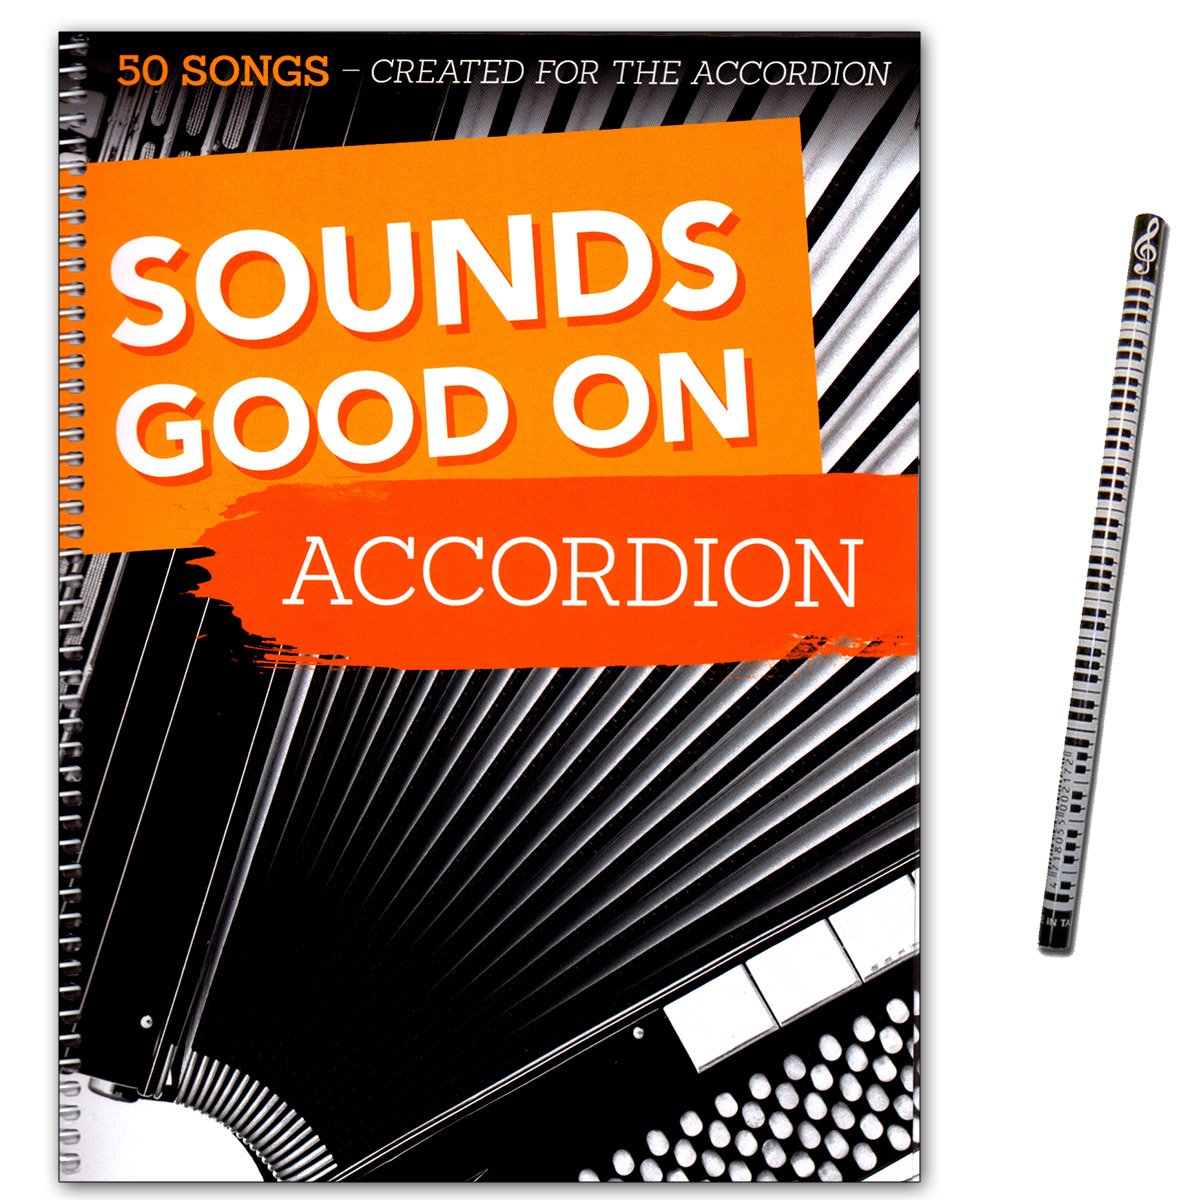 Sounds Good On Accordion – 50 morceaux Crea Ted for the Accordion – SONGBOOK pour accordéon avec crayons de Piano